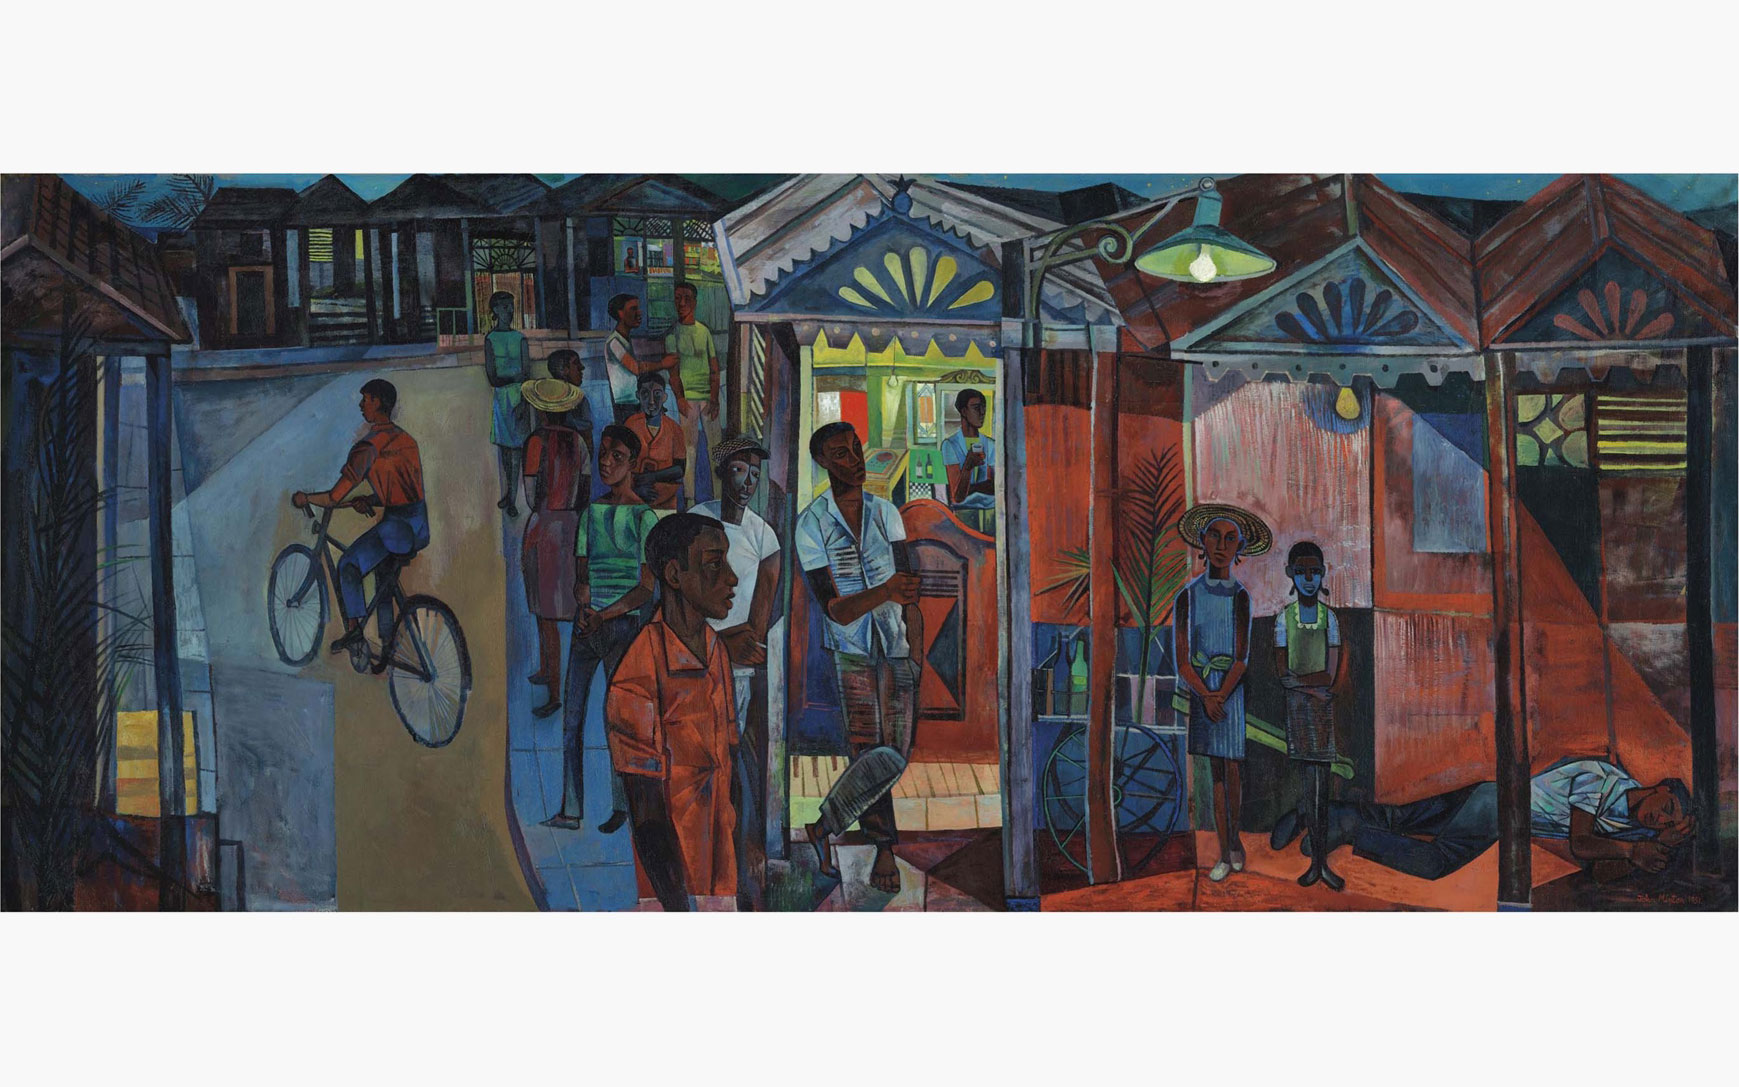 Rediscovered The vast John Minton painting unseen in public for 65 years